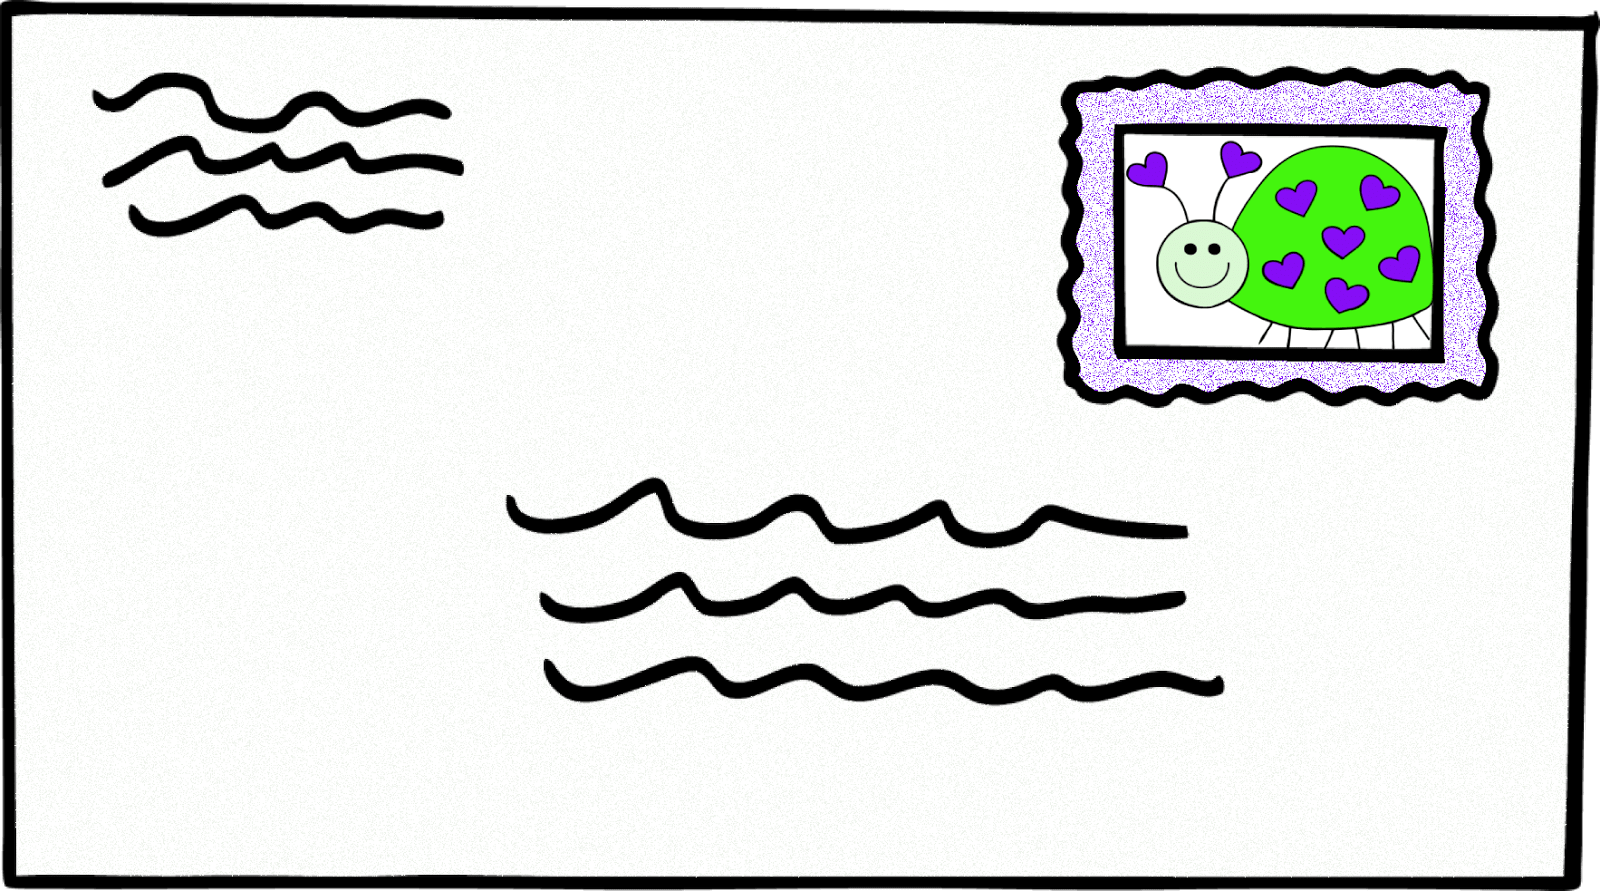 hight resolution of letter clipart image 32127